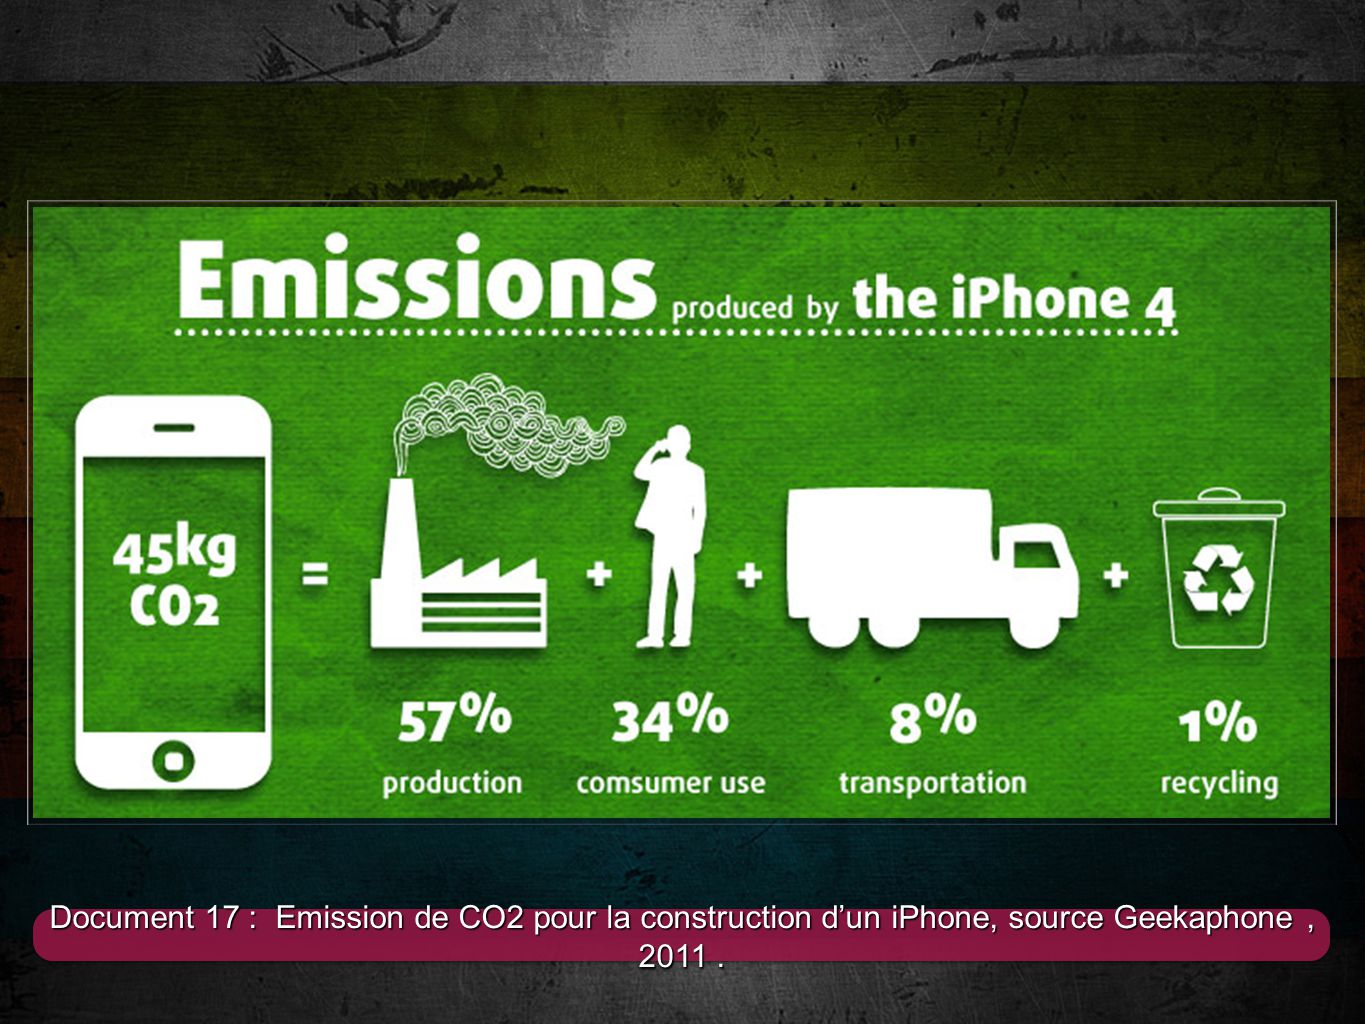 1 Document 17 : Emission de CO2 pour la construction dun iPhone, source Geekaphone, 2011.